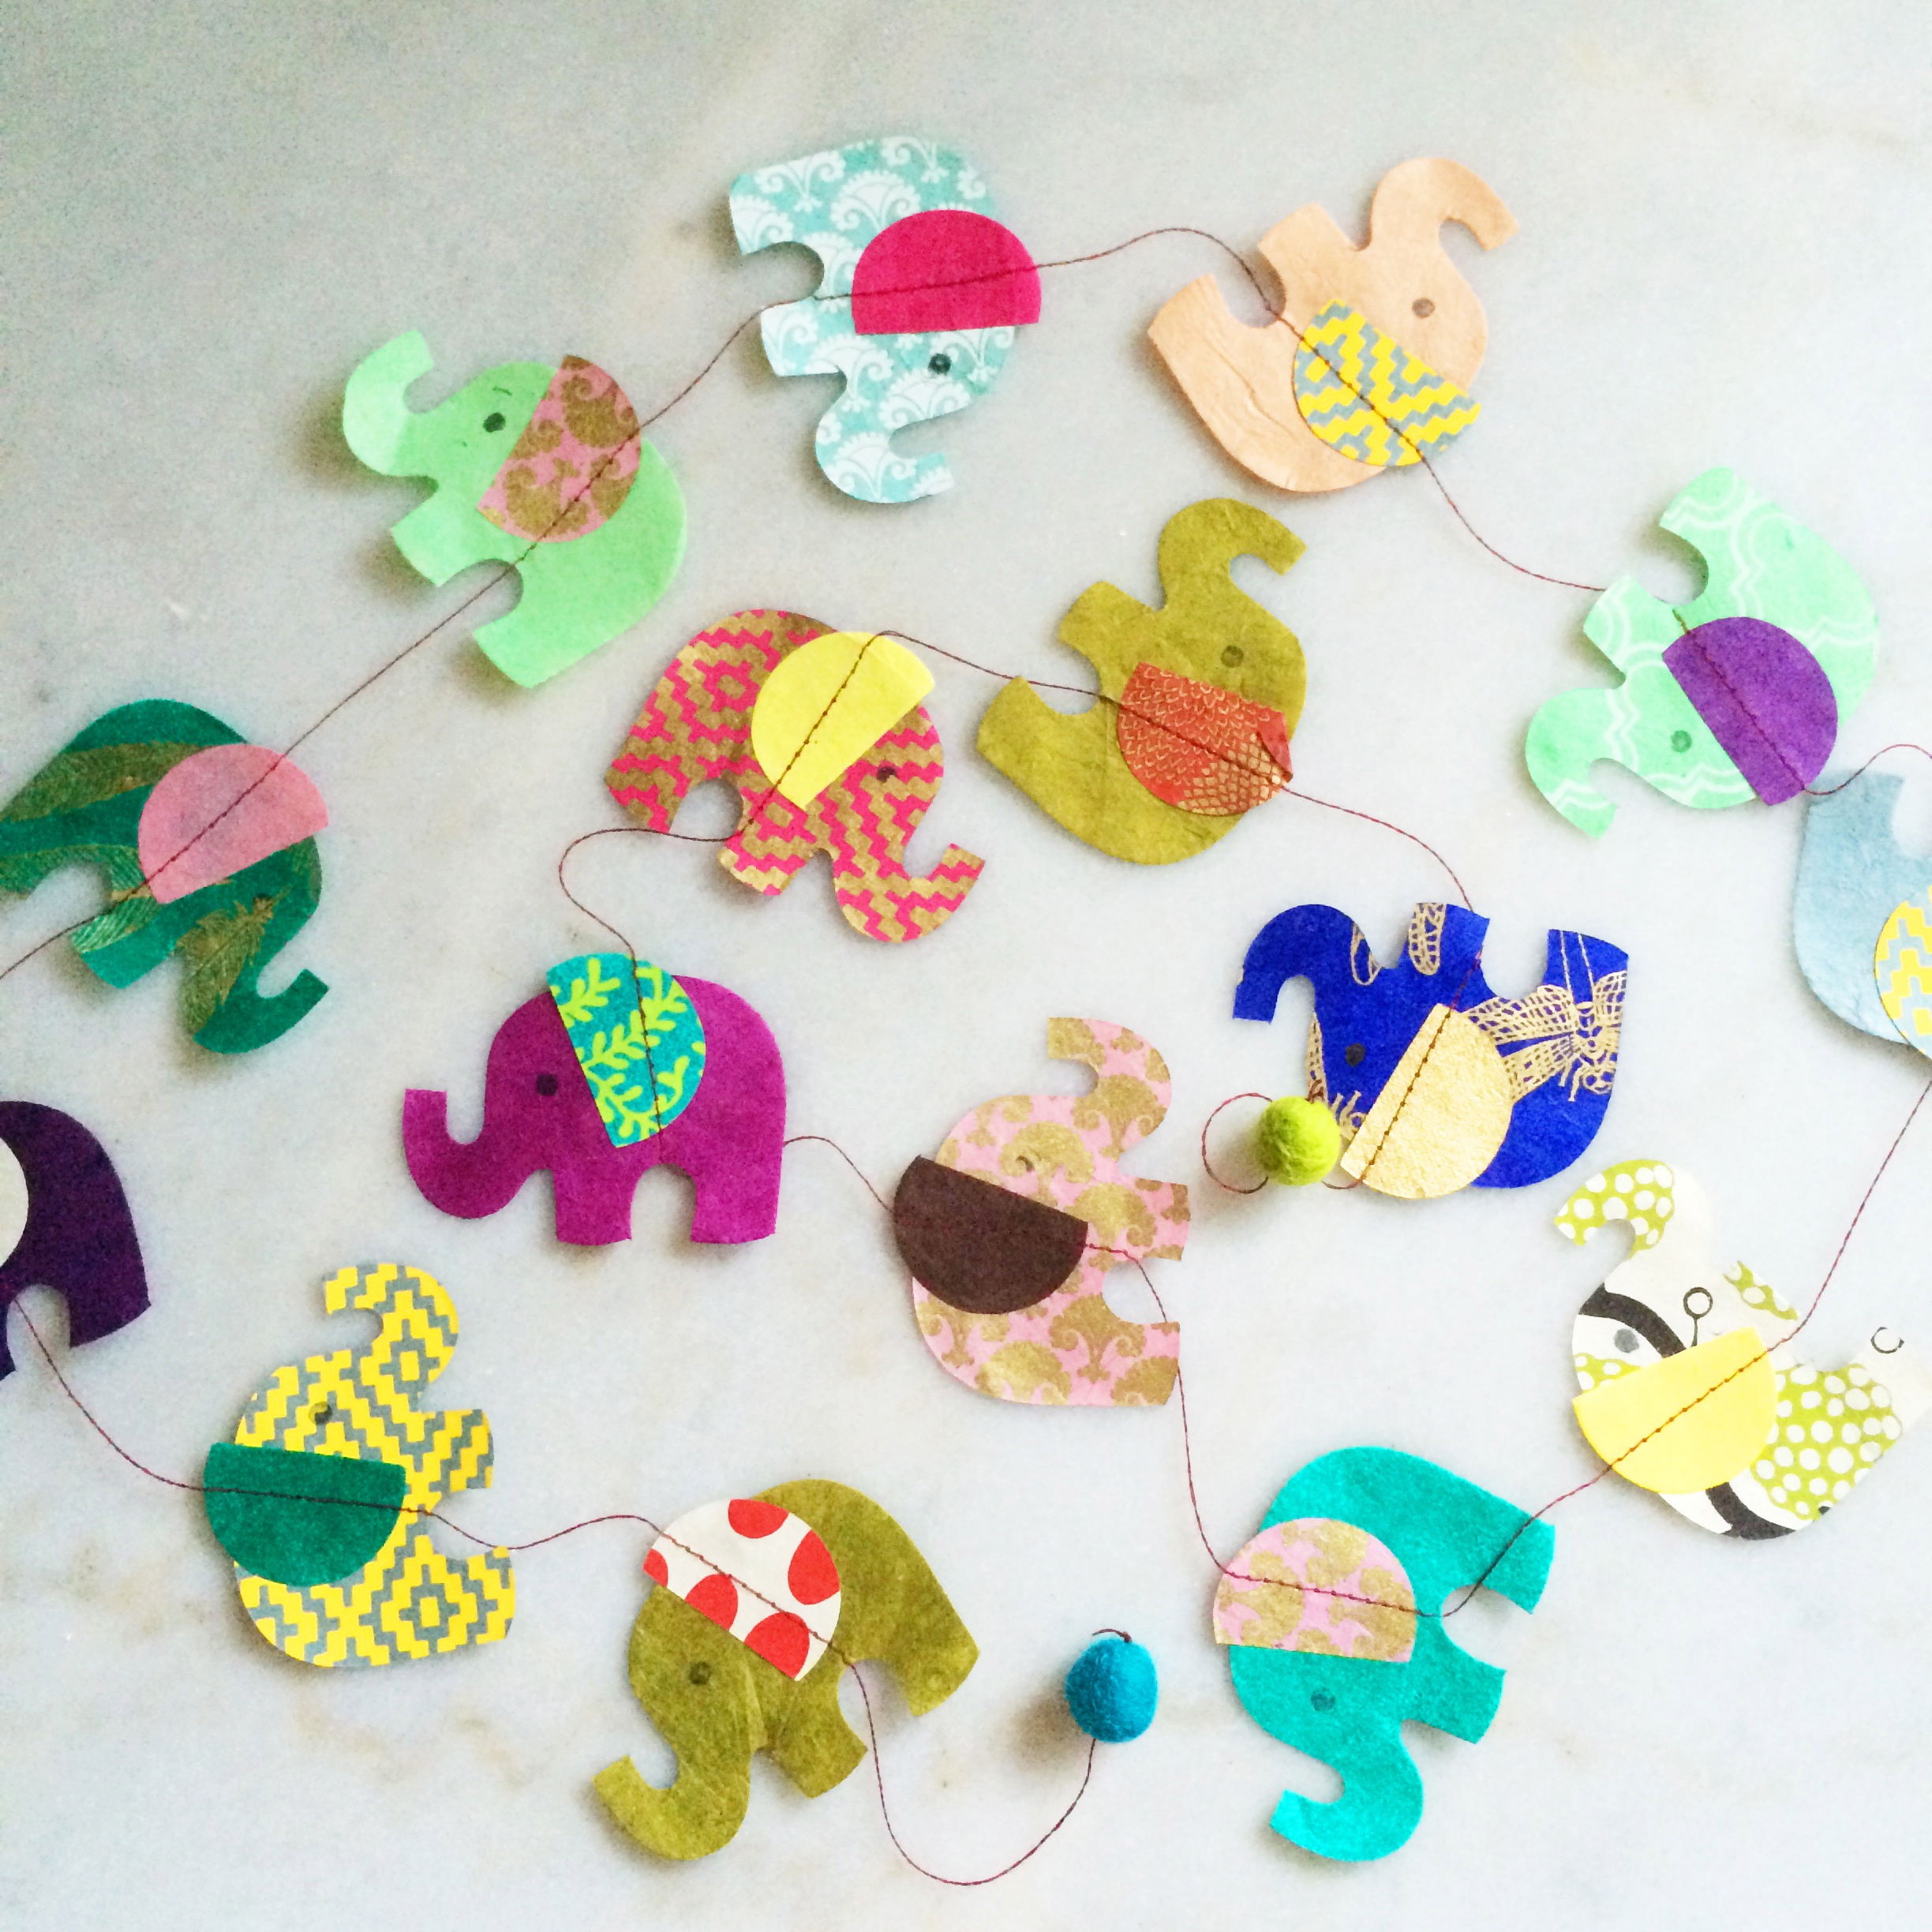 some handmade (not by me) crepe paper elephants.